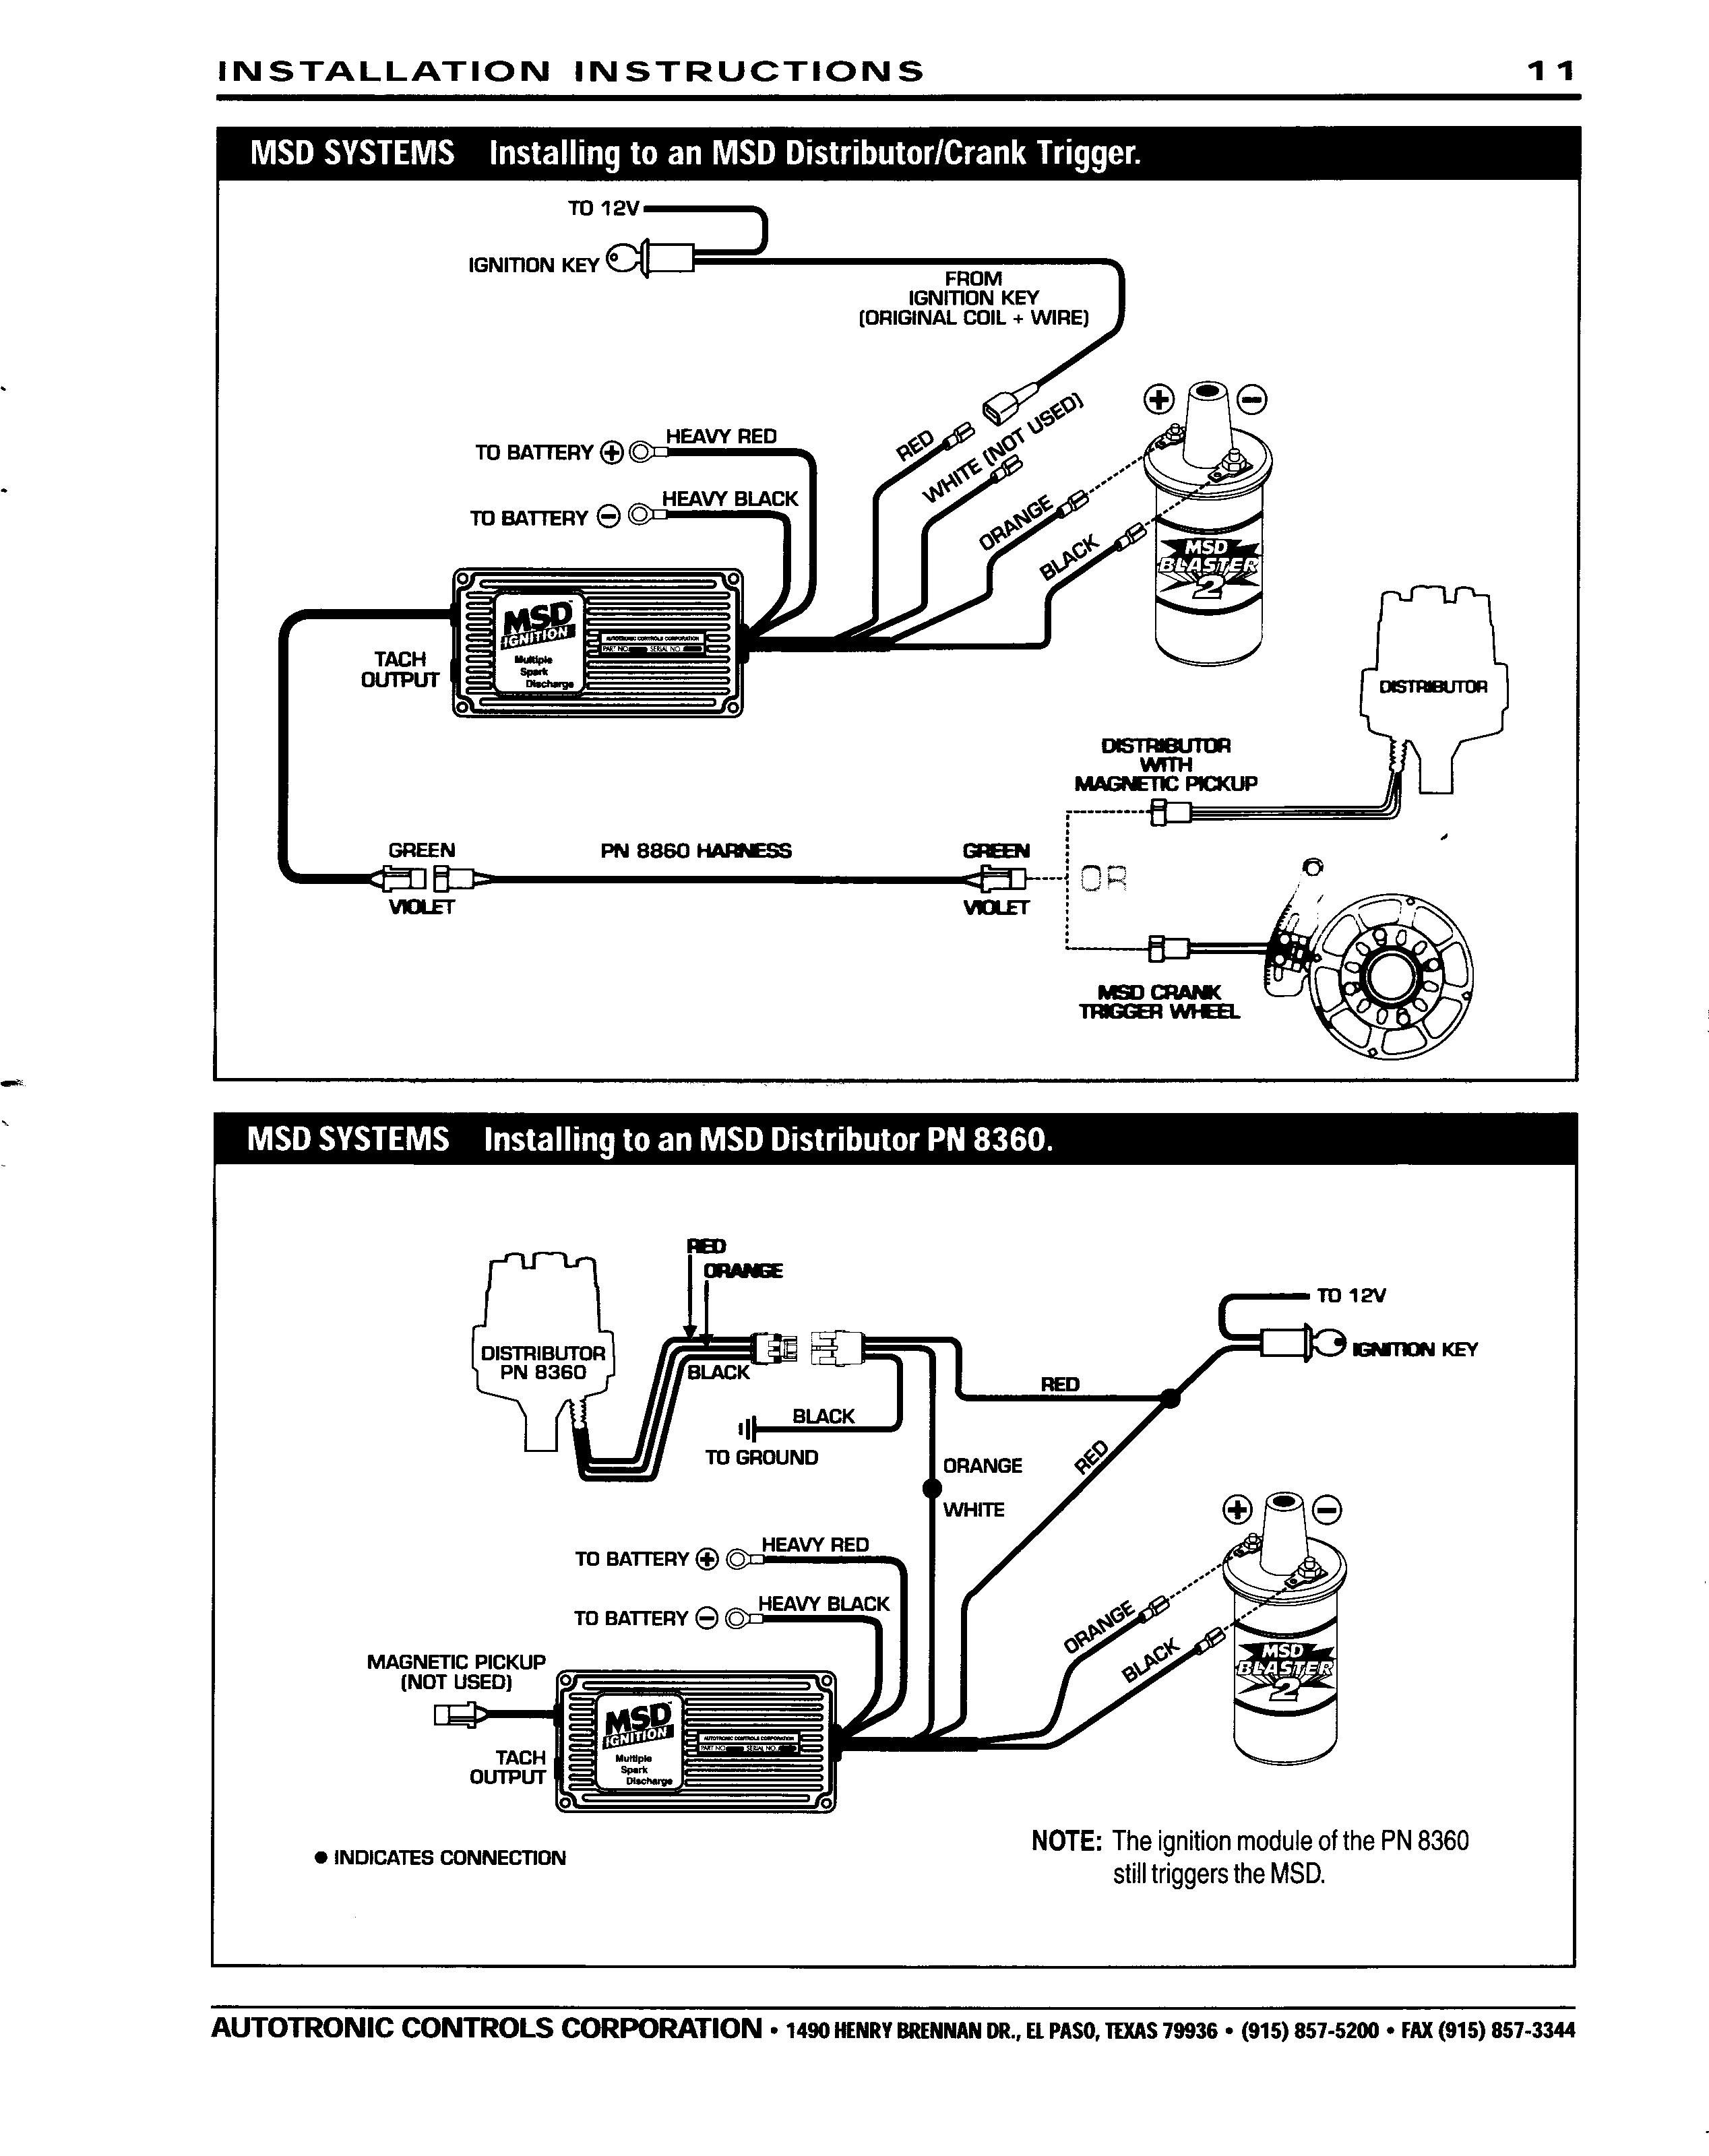 Wiring Diagram For Mallory Distributor Free Download - Preview ... on